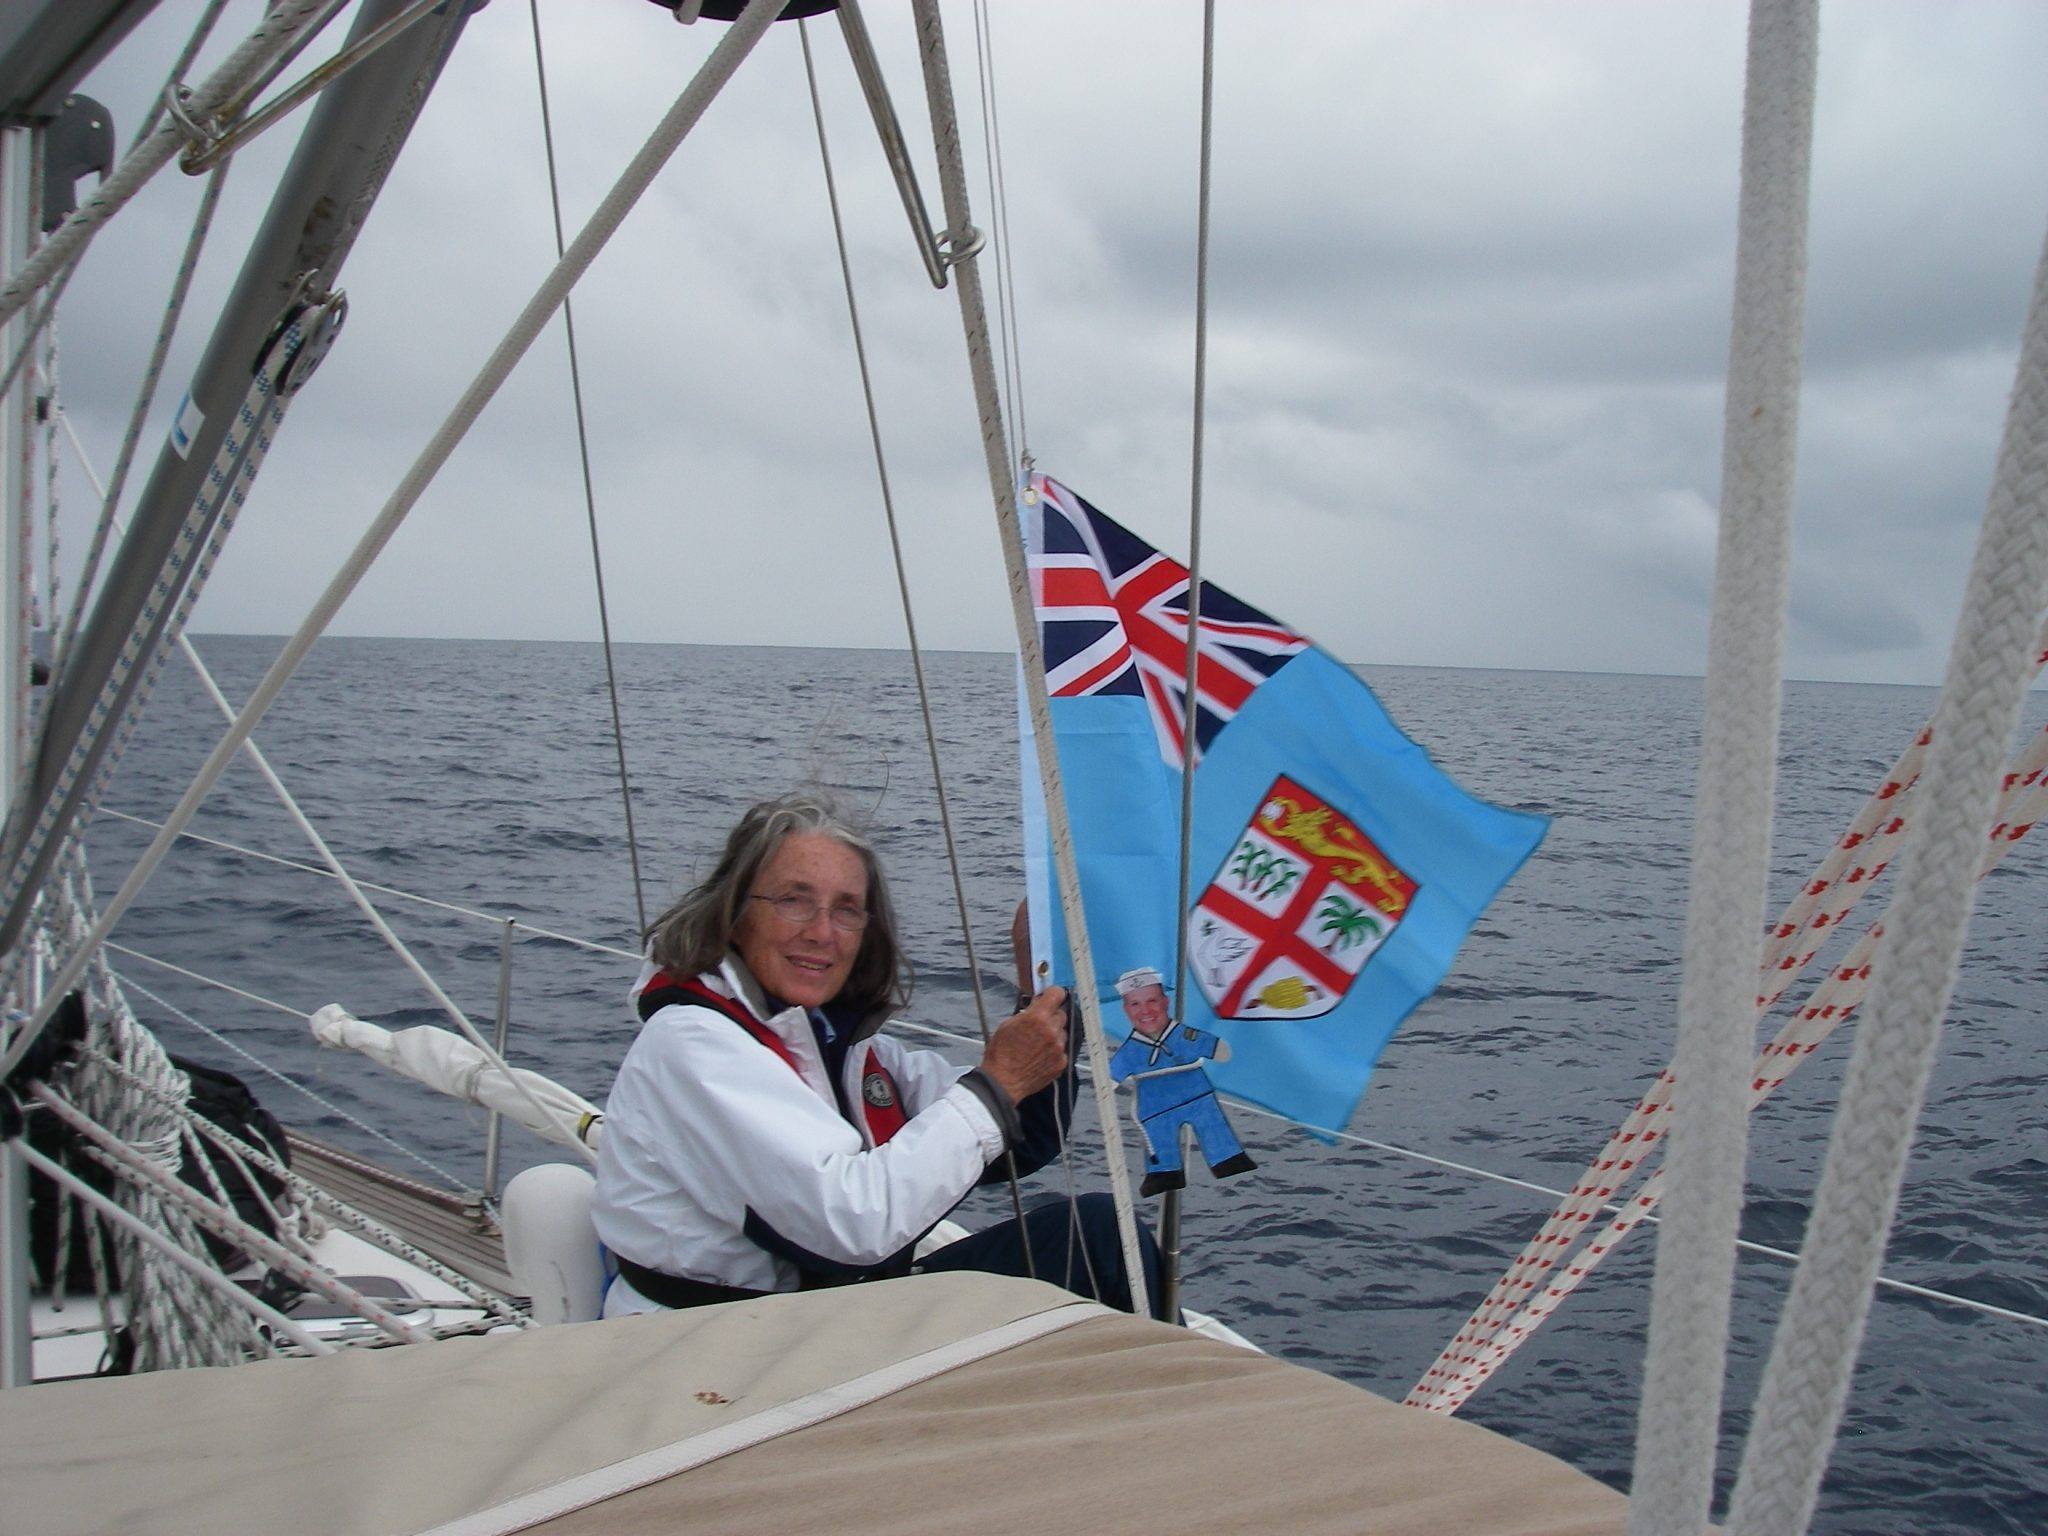 37. On passage from Tonga to Vanuatu, Flat Mr. Davis & Anne hoisted the Fiji courtesy flag as Joyful sailed through Fijian waters. Joyful did not stop in Fiji because she wanted to catch up with the BPO fleet, so the yellow Q flag was not needed then